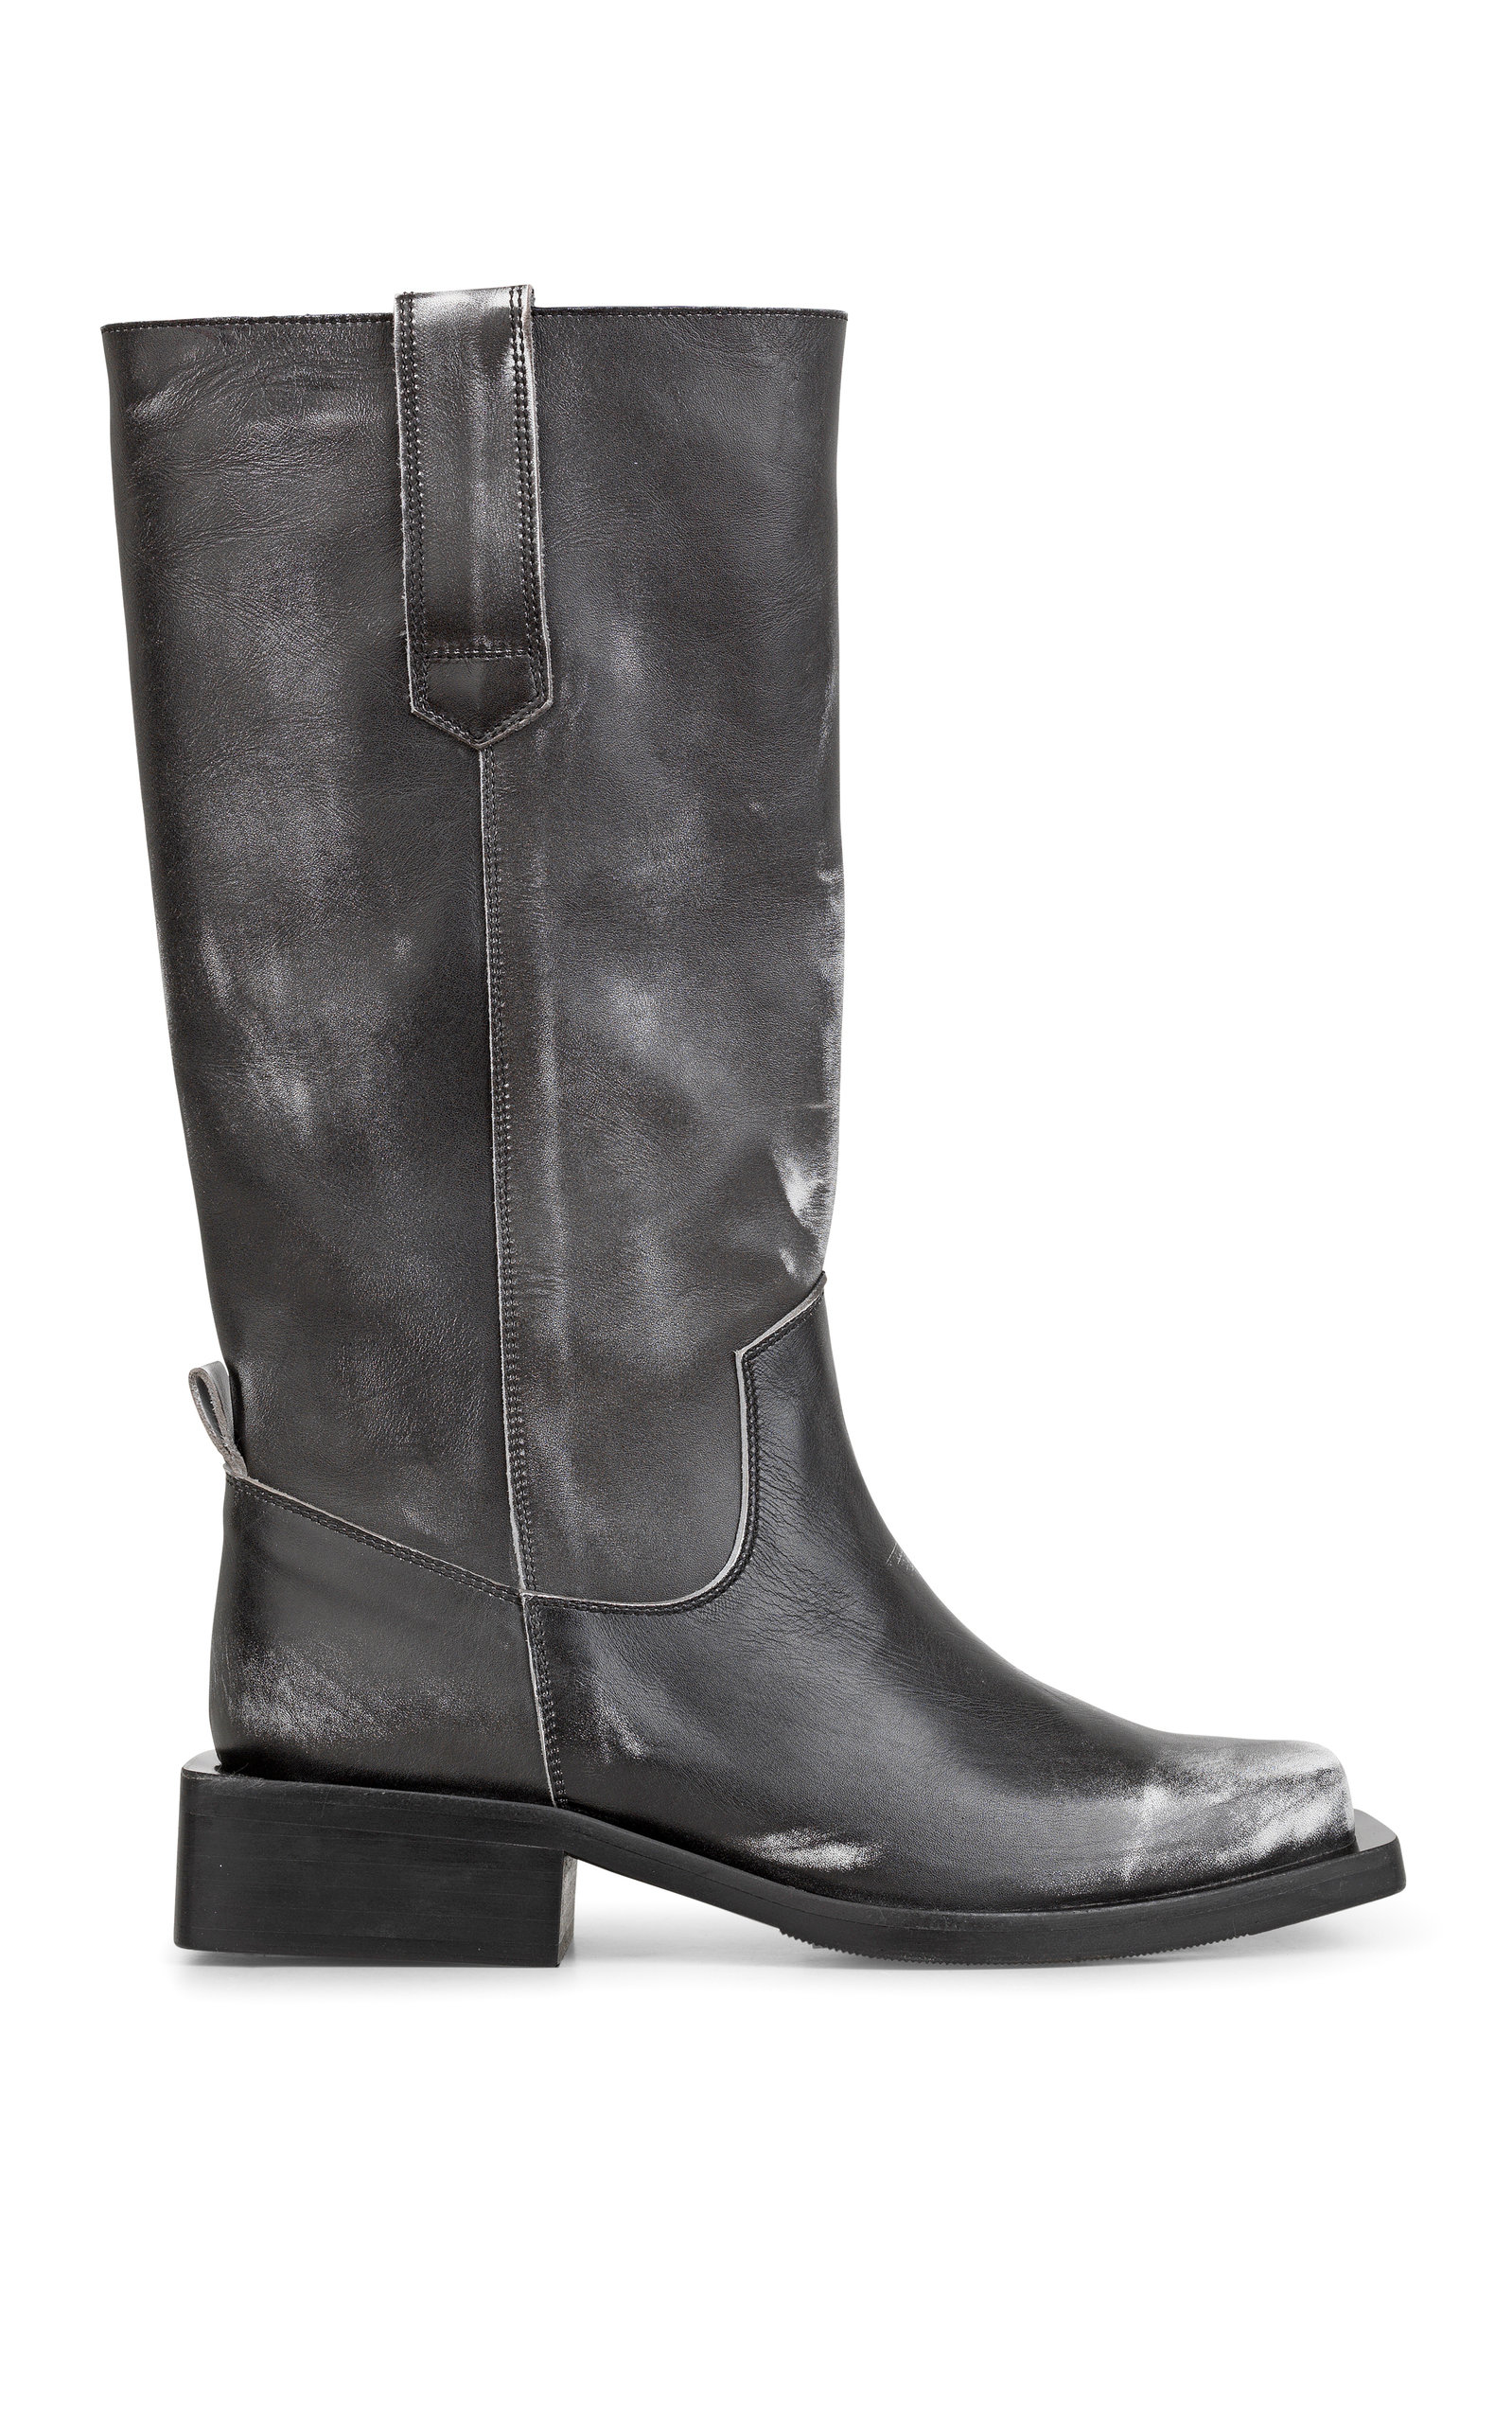 Exclusive Distressed Leather Motorcycle Boots